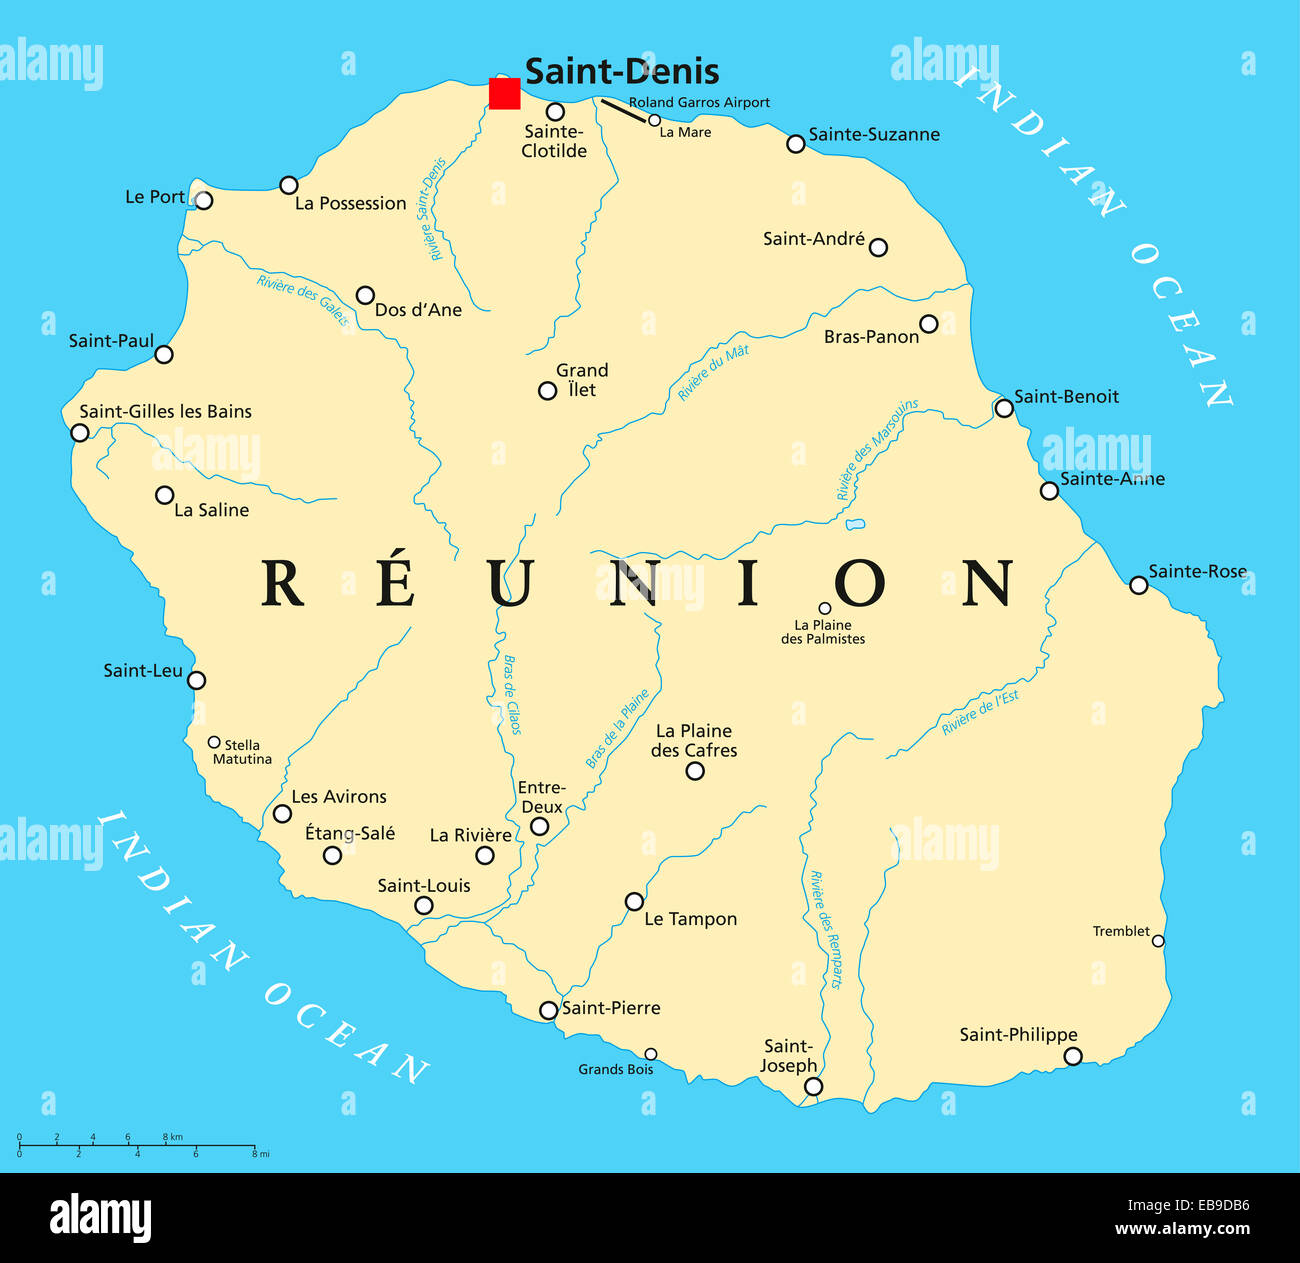 Reunion Political Map With Prefecture Saint Denis Important